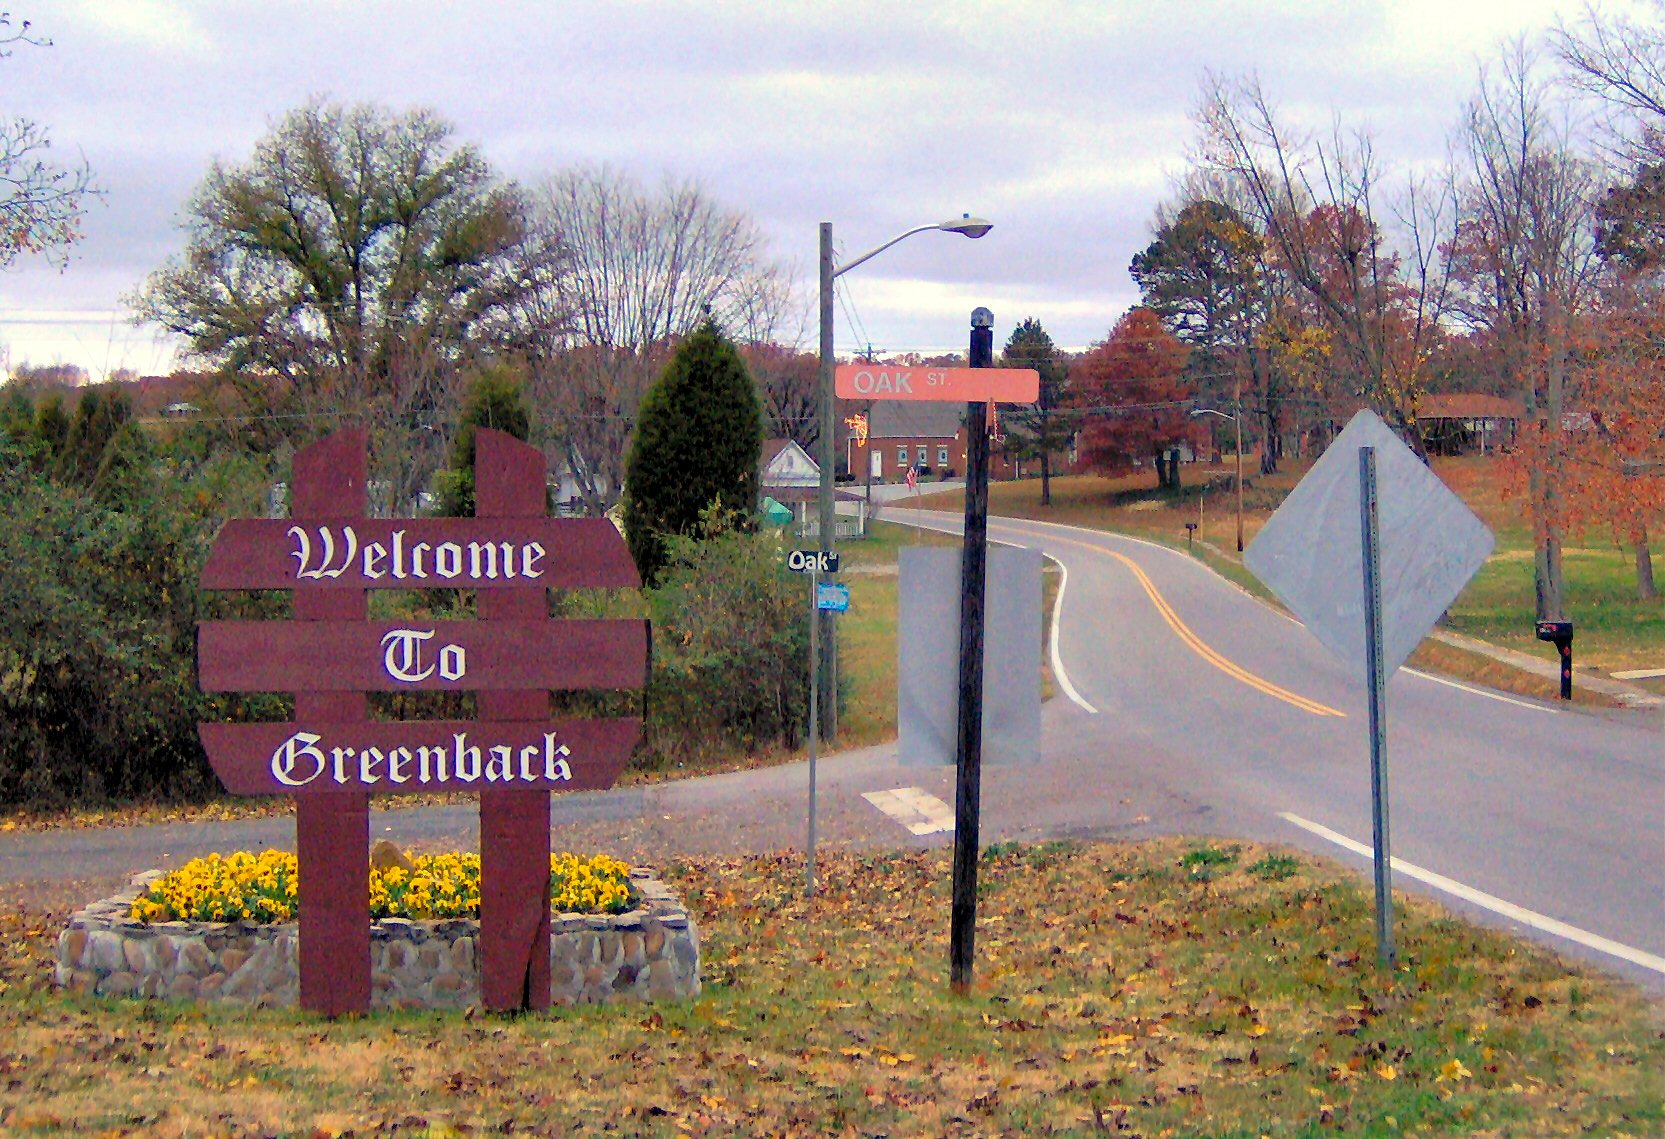 greenback city Greenback, Tennessee